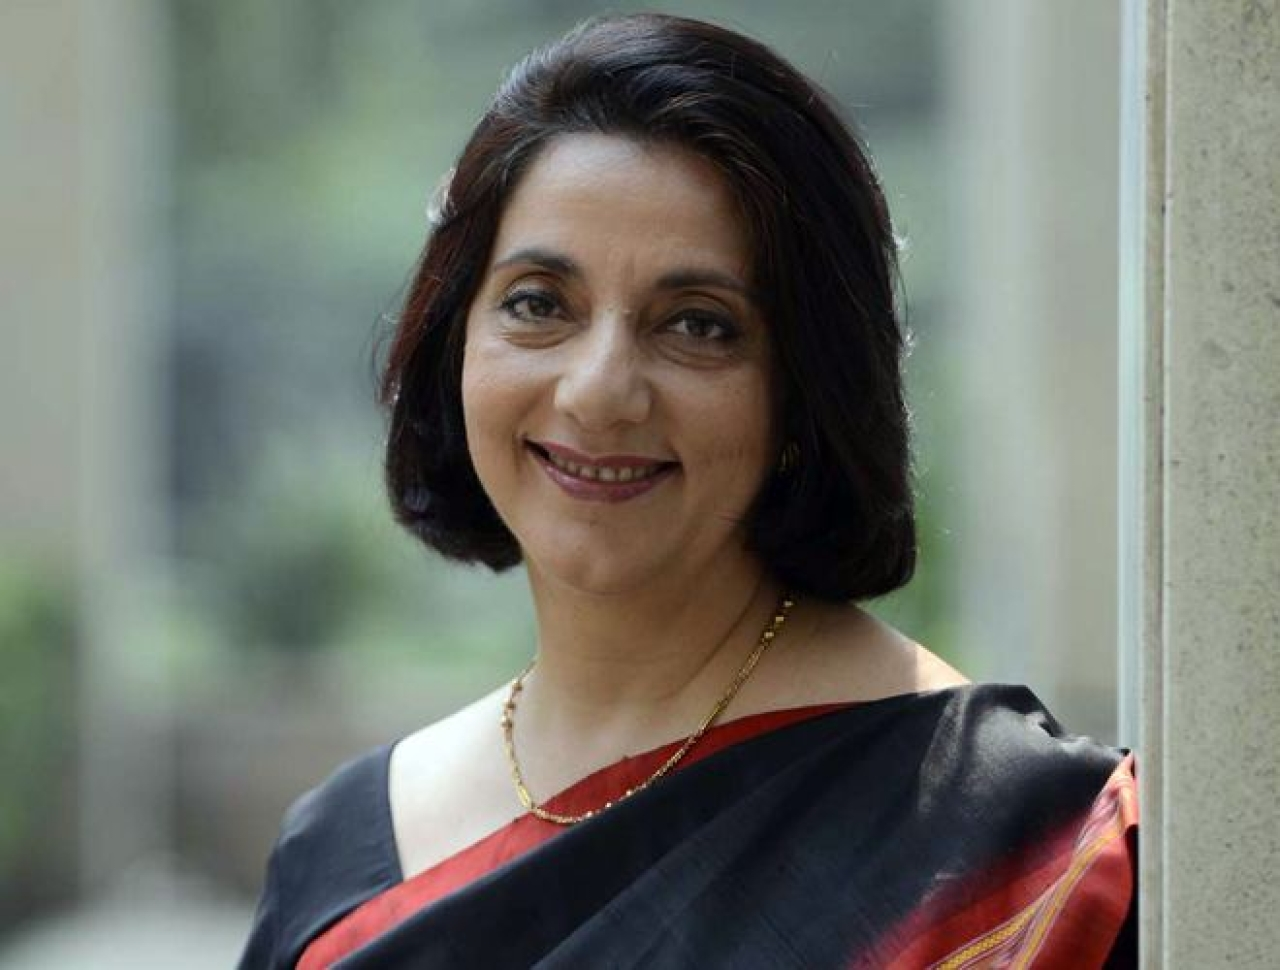 Banker Turned AAP Leader Meera Sanyal Dies After A Brief Illness